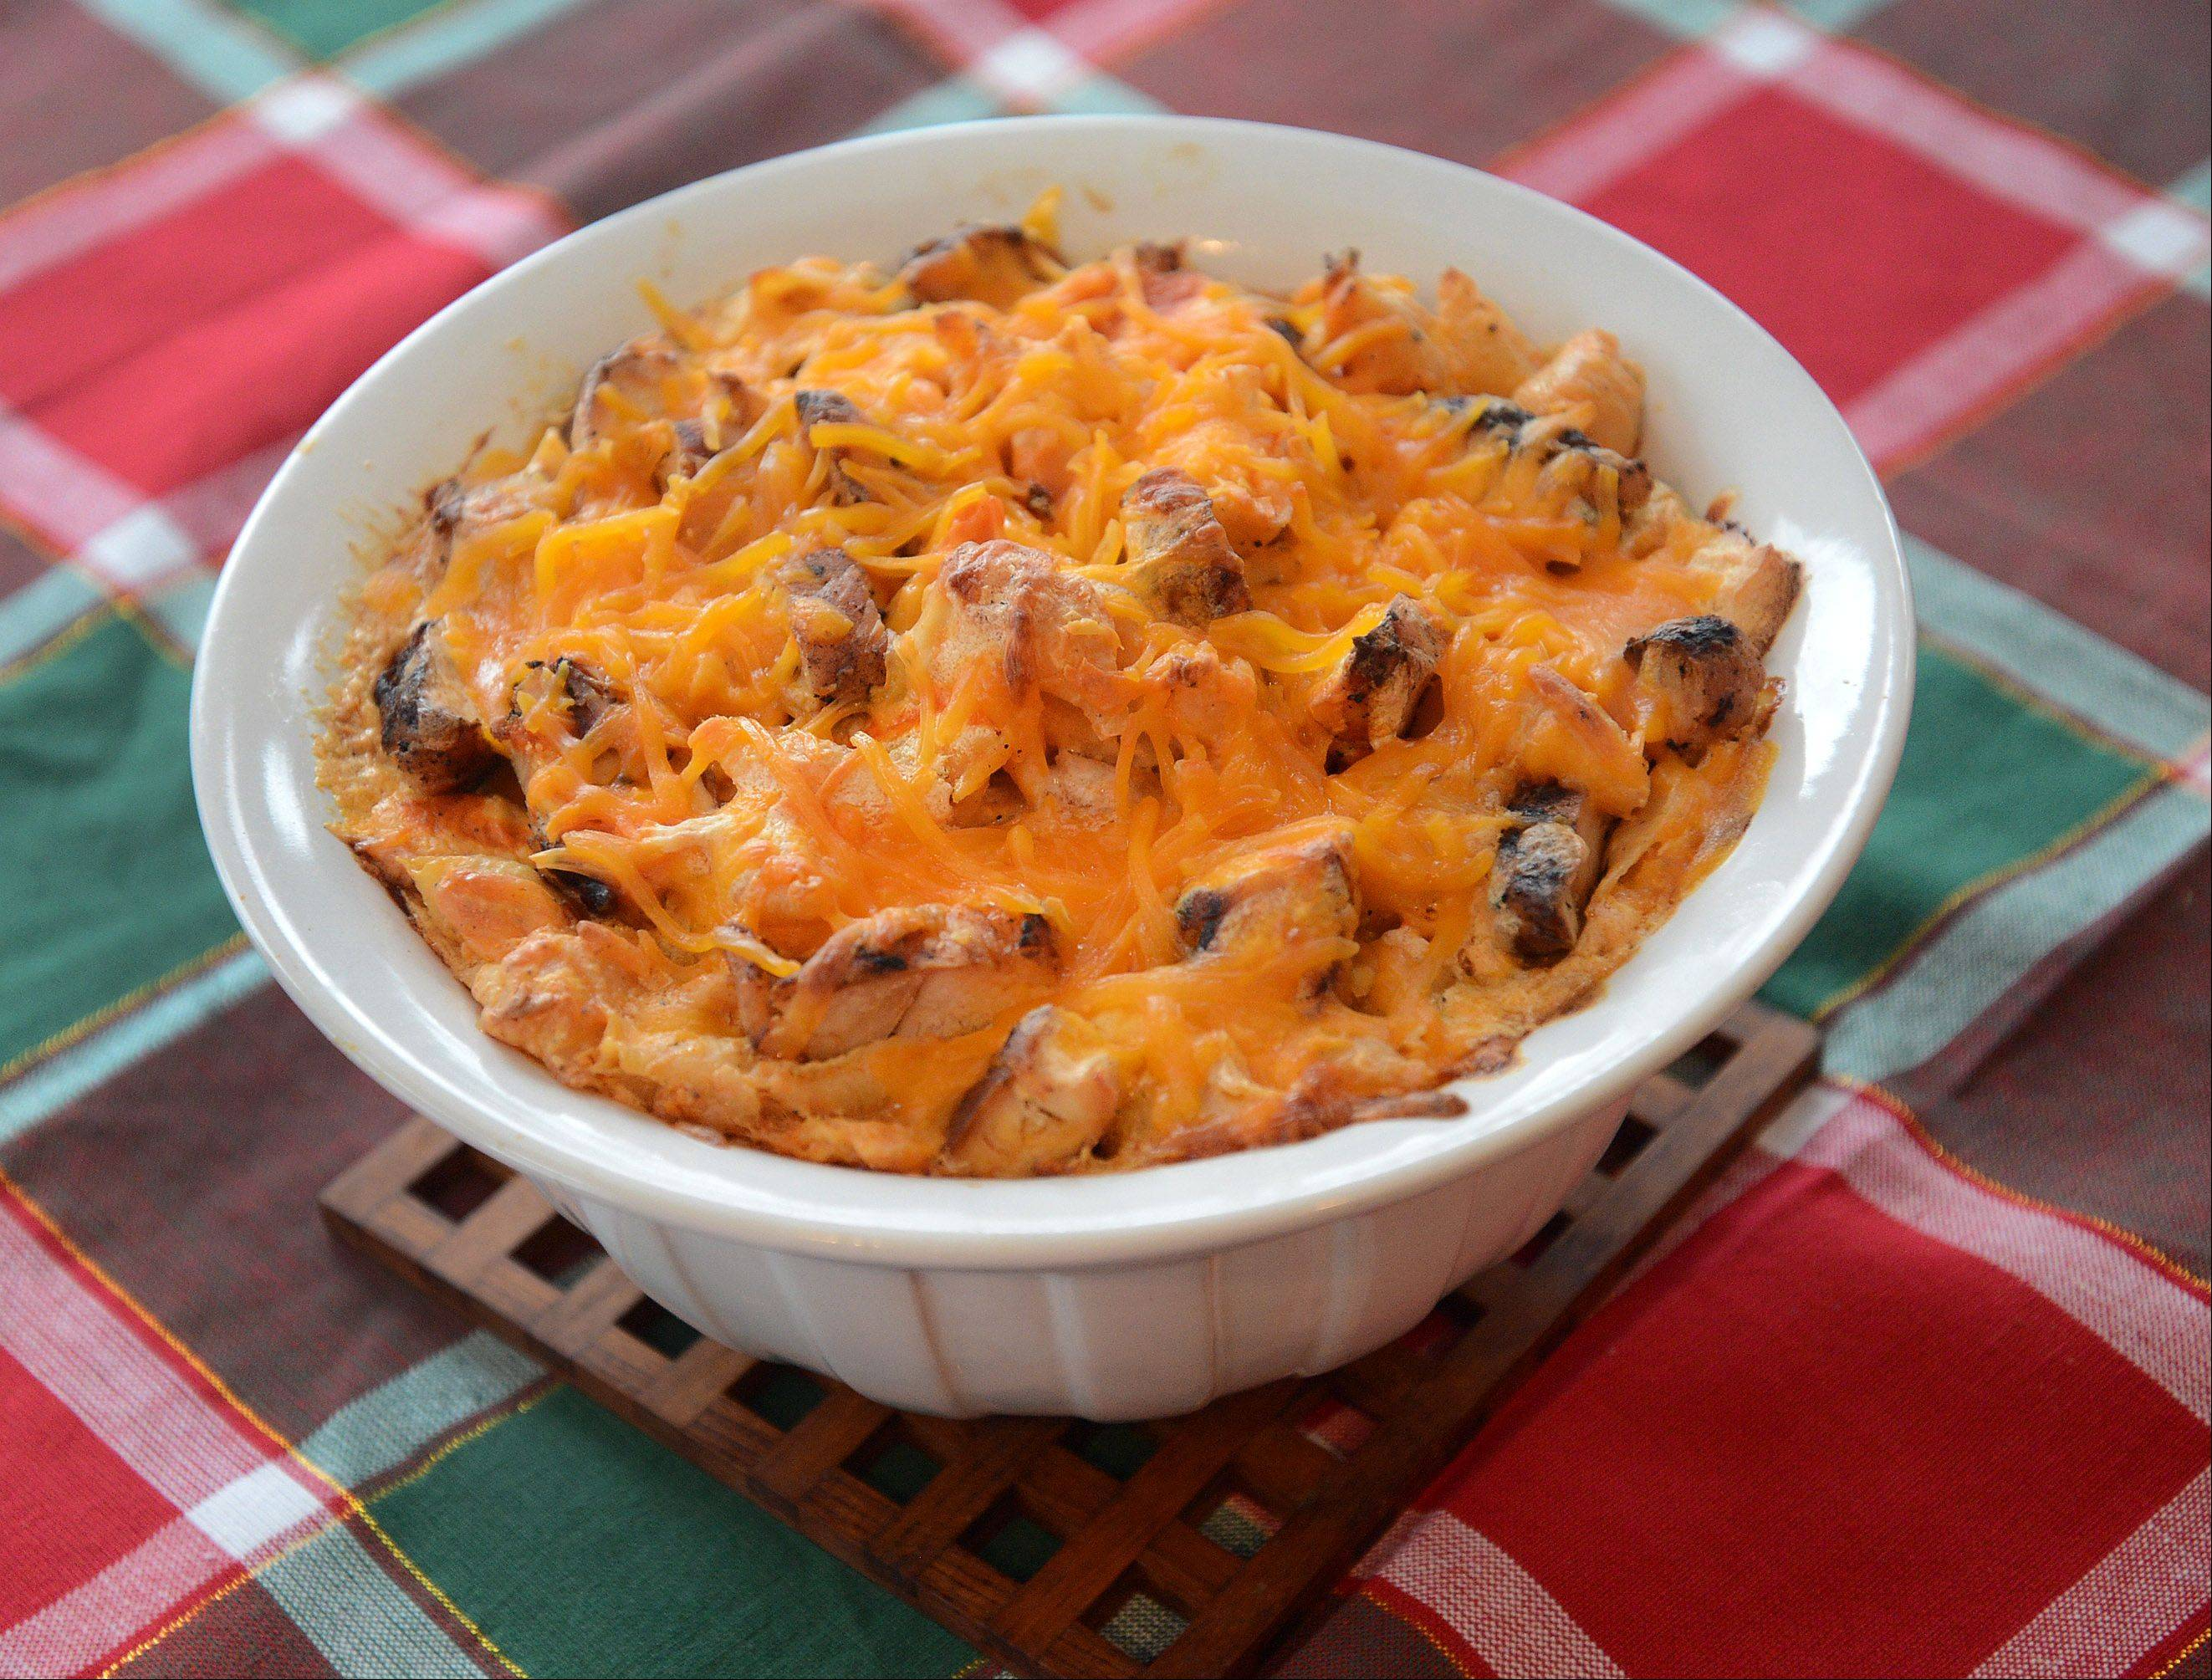 A half cup of hot sauce spices up Patty Nicpon's Buffalo-style macaroni and cheese.